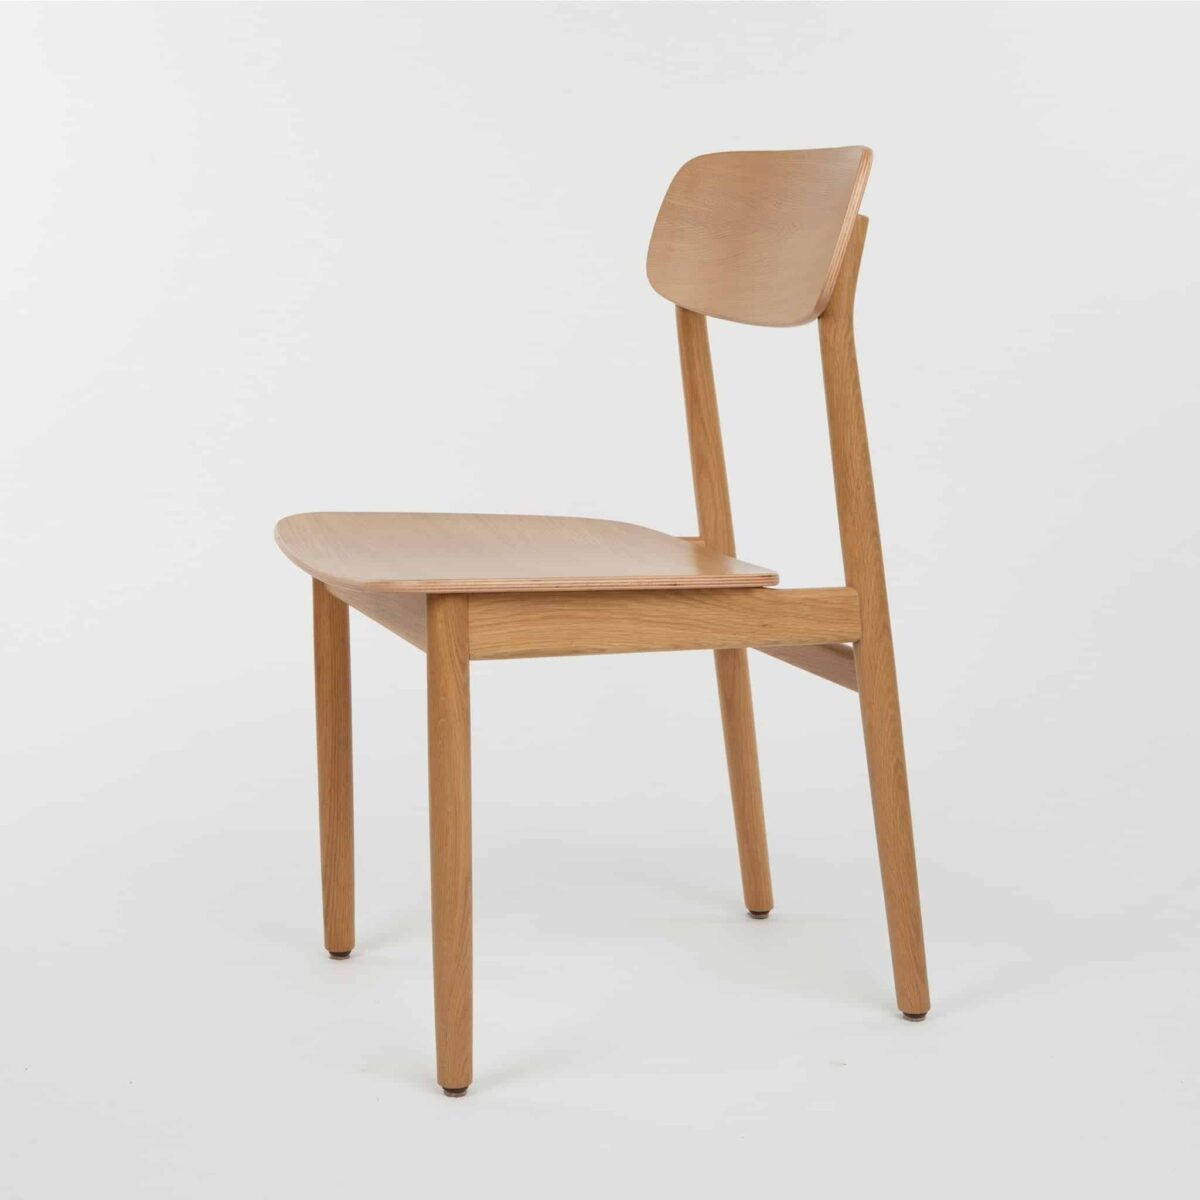 another-country-thonet-chair-130-no-armrests–oak-non-upholstered-002